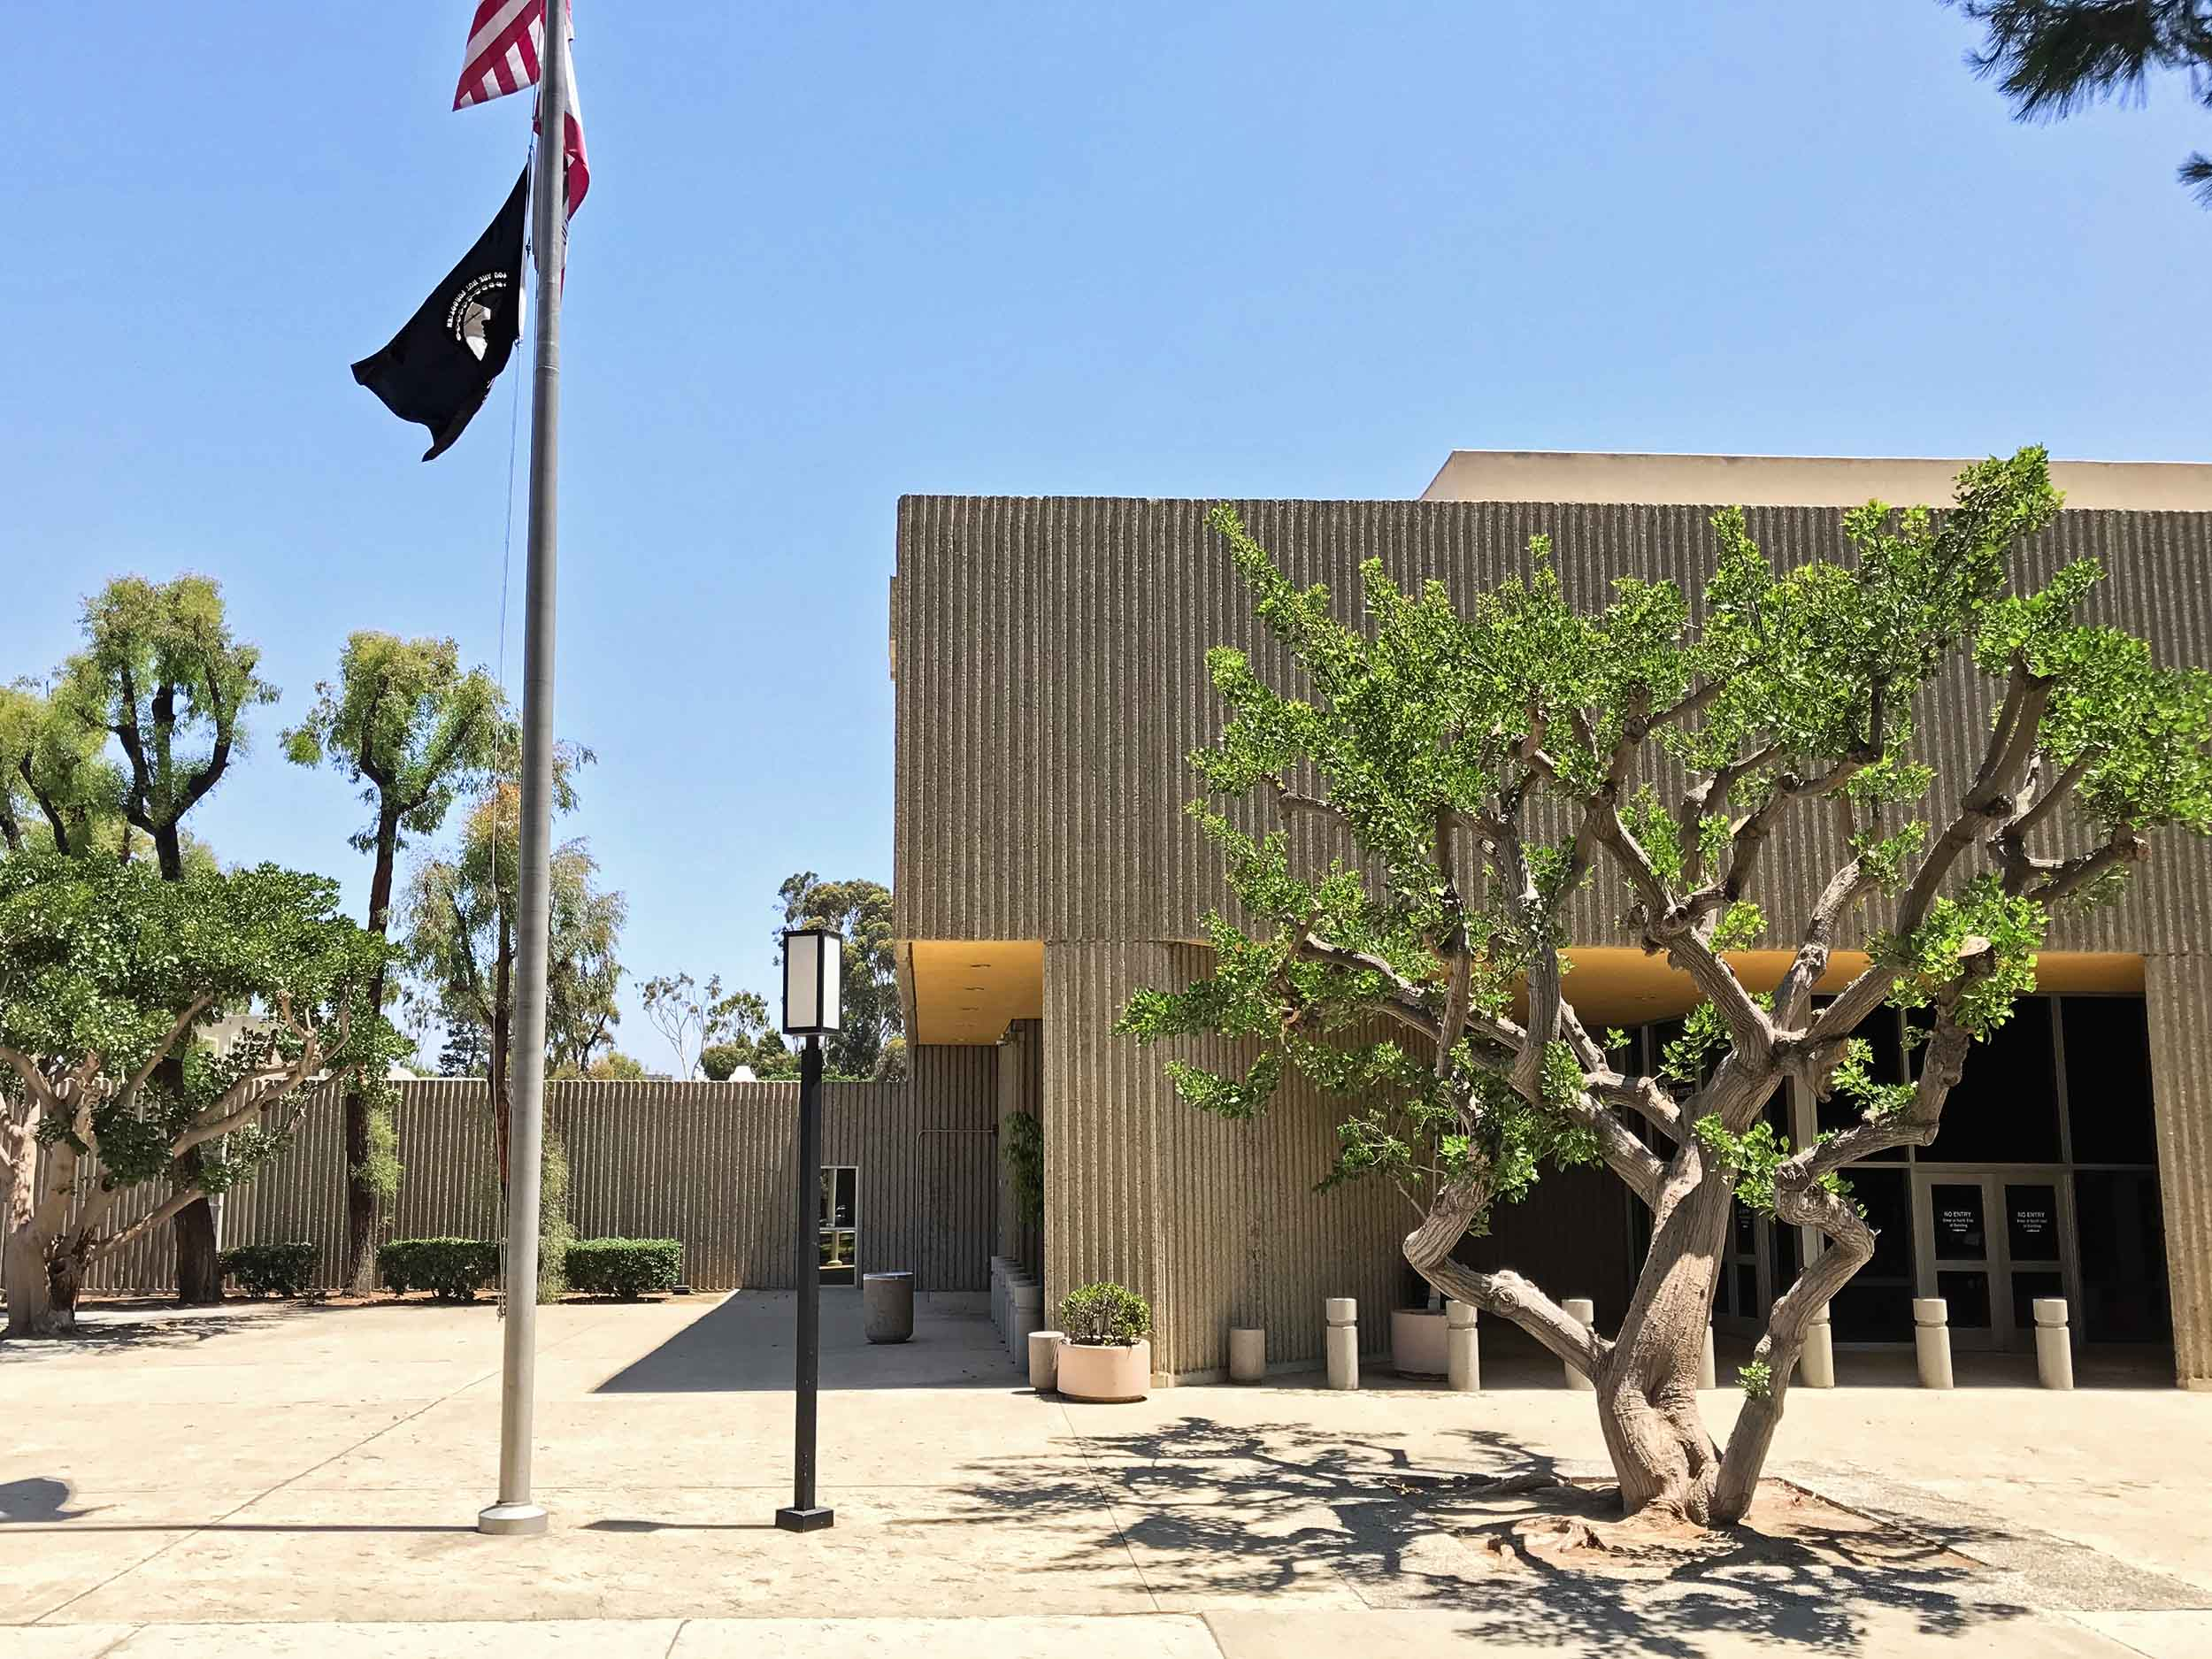 Orange County Superior Court Newport Beach